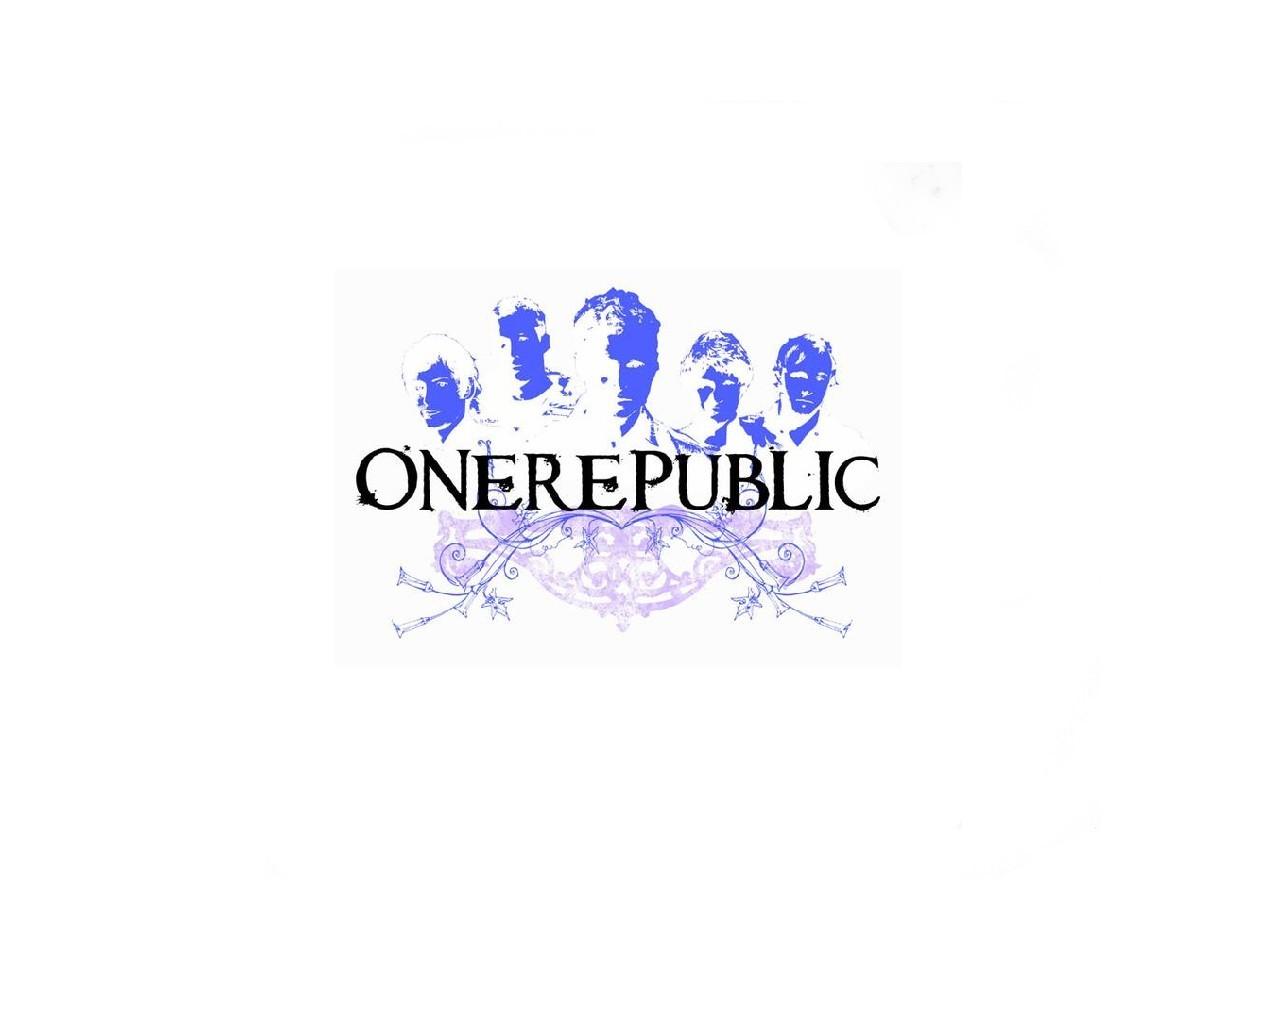 OneRepublic White Logo Wallpaper